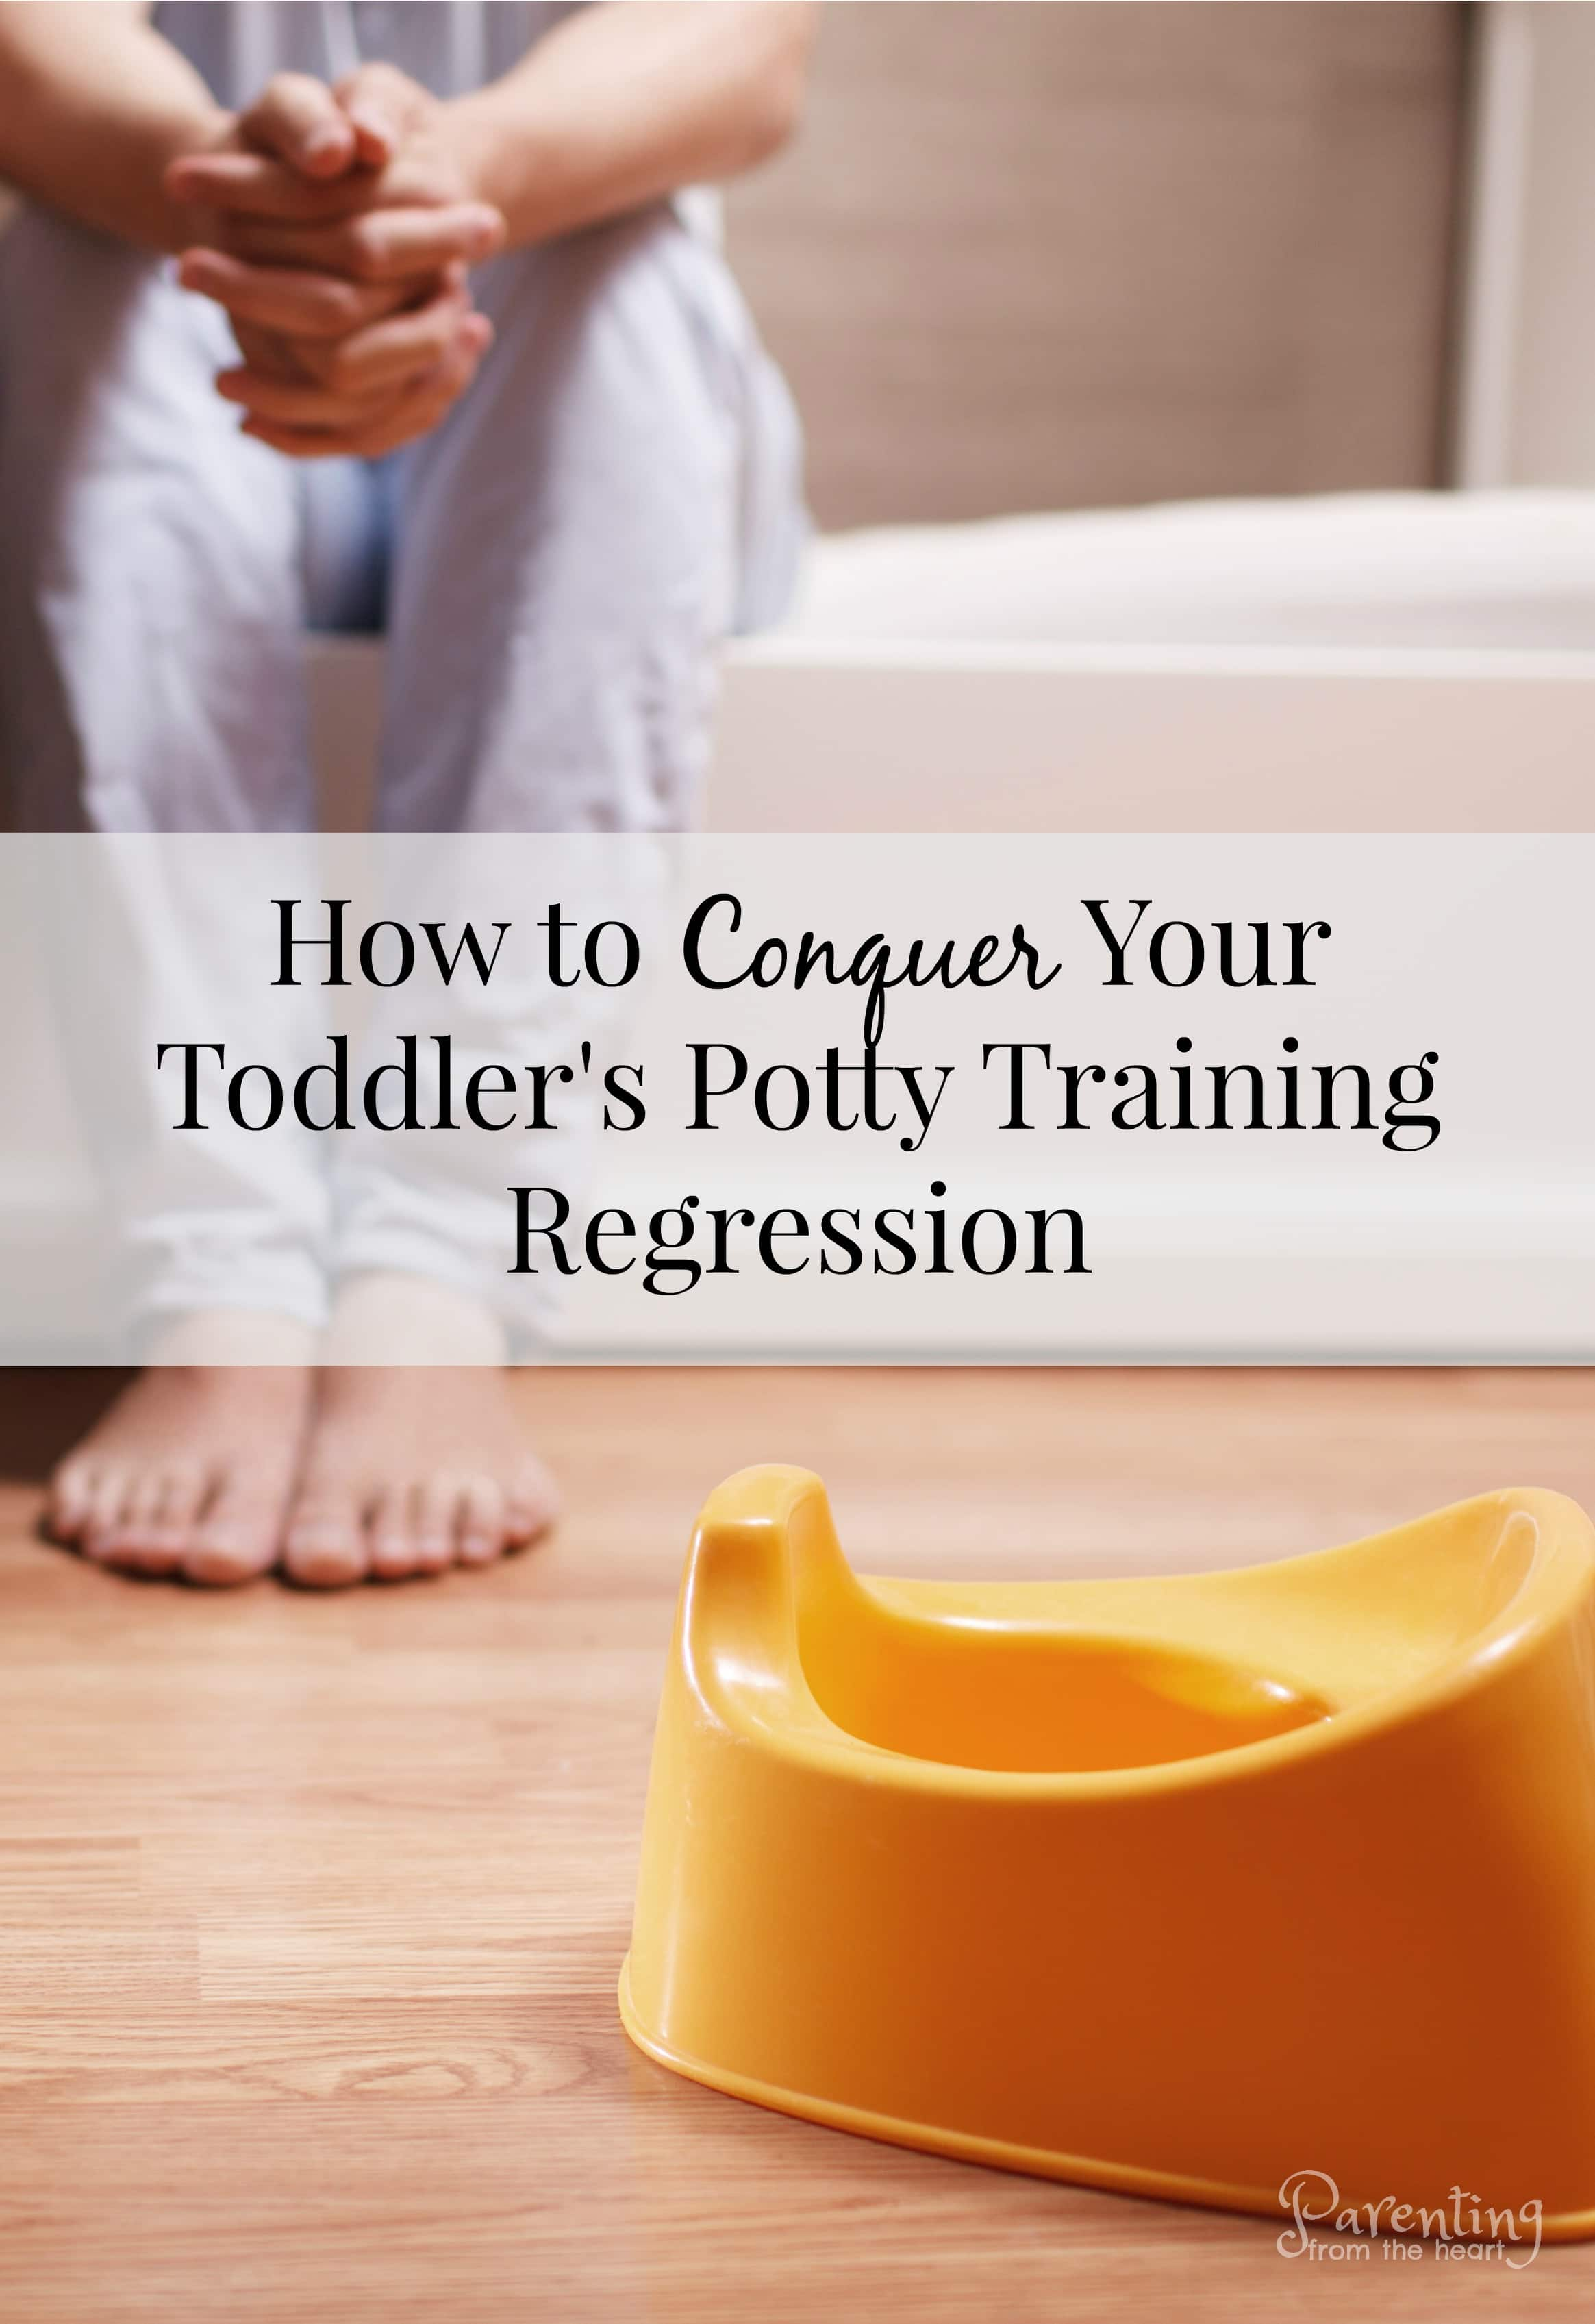 As a parent, it is such a proud moment when your toddler starts potty training and has success. With many children, it starts off well, but there is a potty training regression. Whether your child is a toddler, a three-year-old or four-year-old, there are practical strategies here to help through the most frustrating potty training issues. #pottytraining #pottytrainingregression #parentingtoddlers #parenting #toddlers #positiveparenting